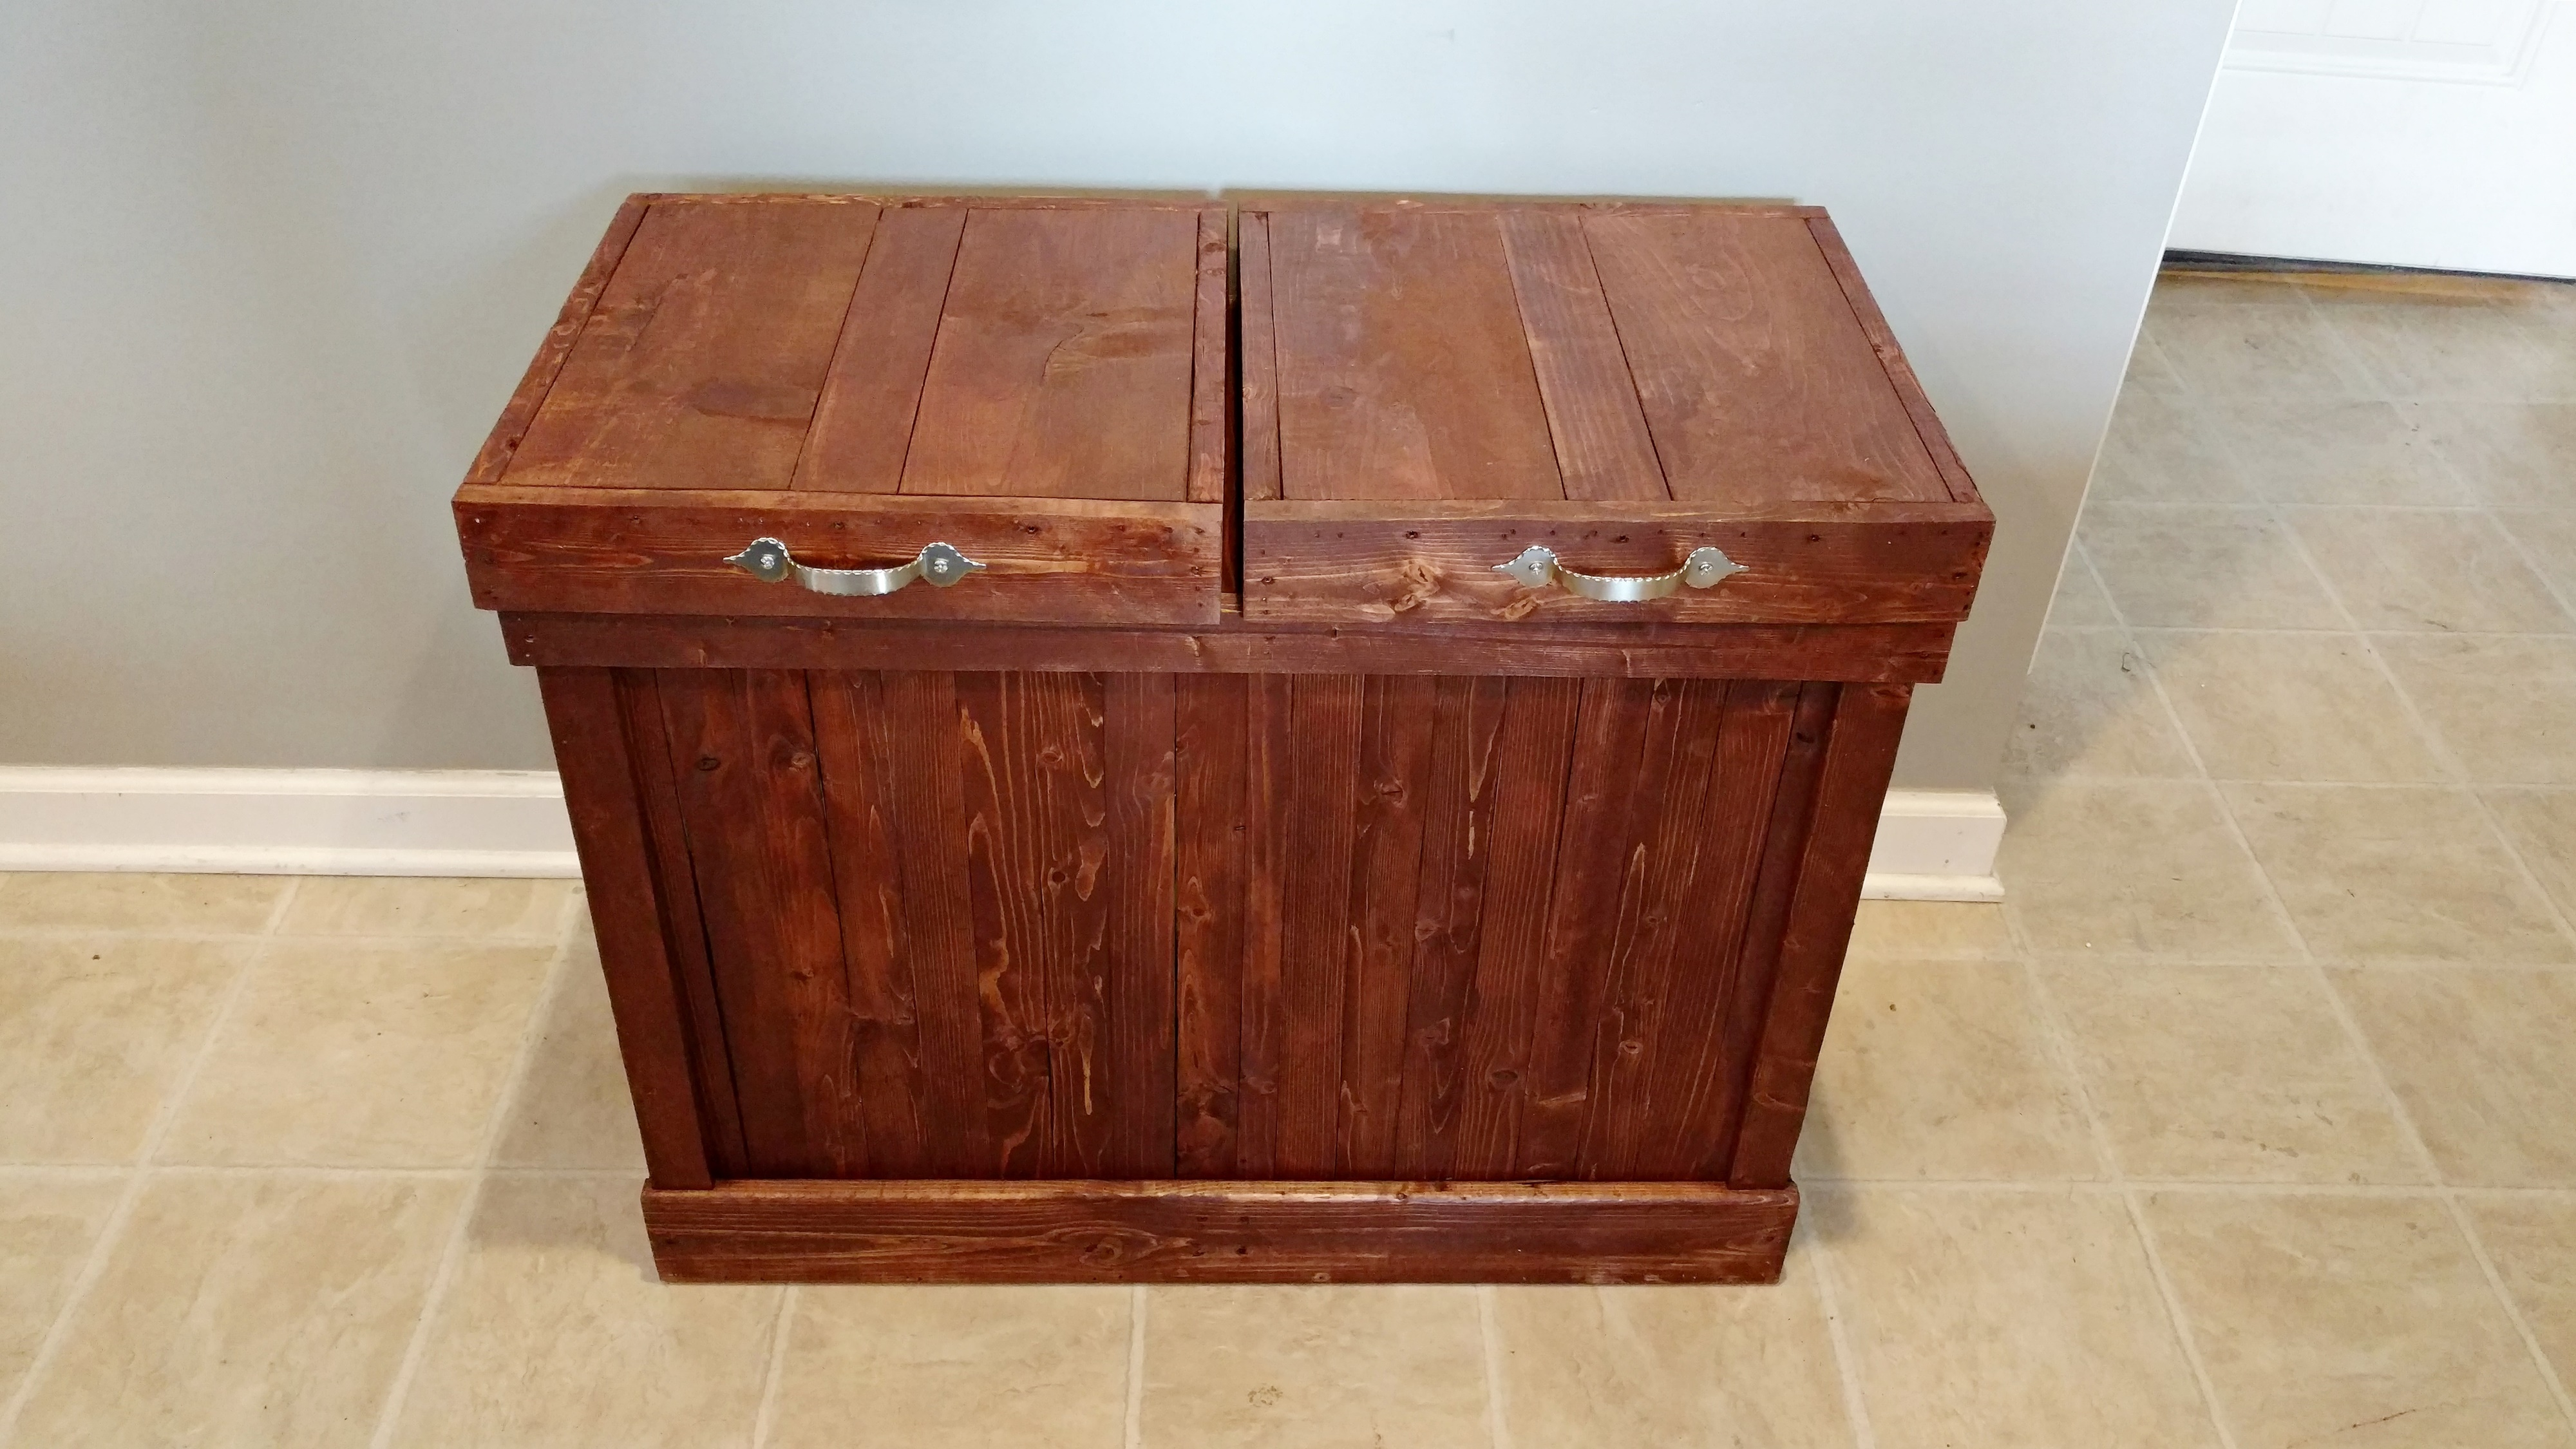 Double Wood Trash Can, Recycling Bin, Rustic Trash Bin, Garbage Can,  Recycling, Kitchen Storage sold by Simply Rustic Furnishings